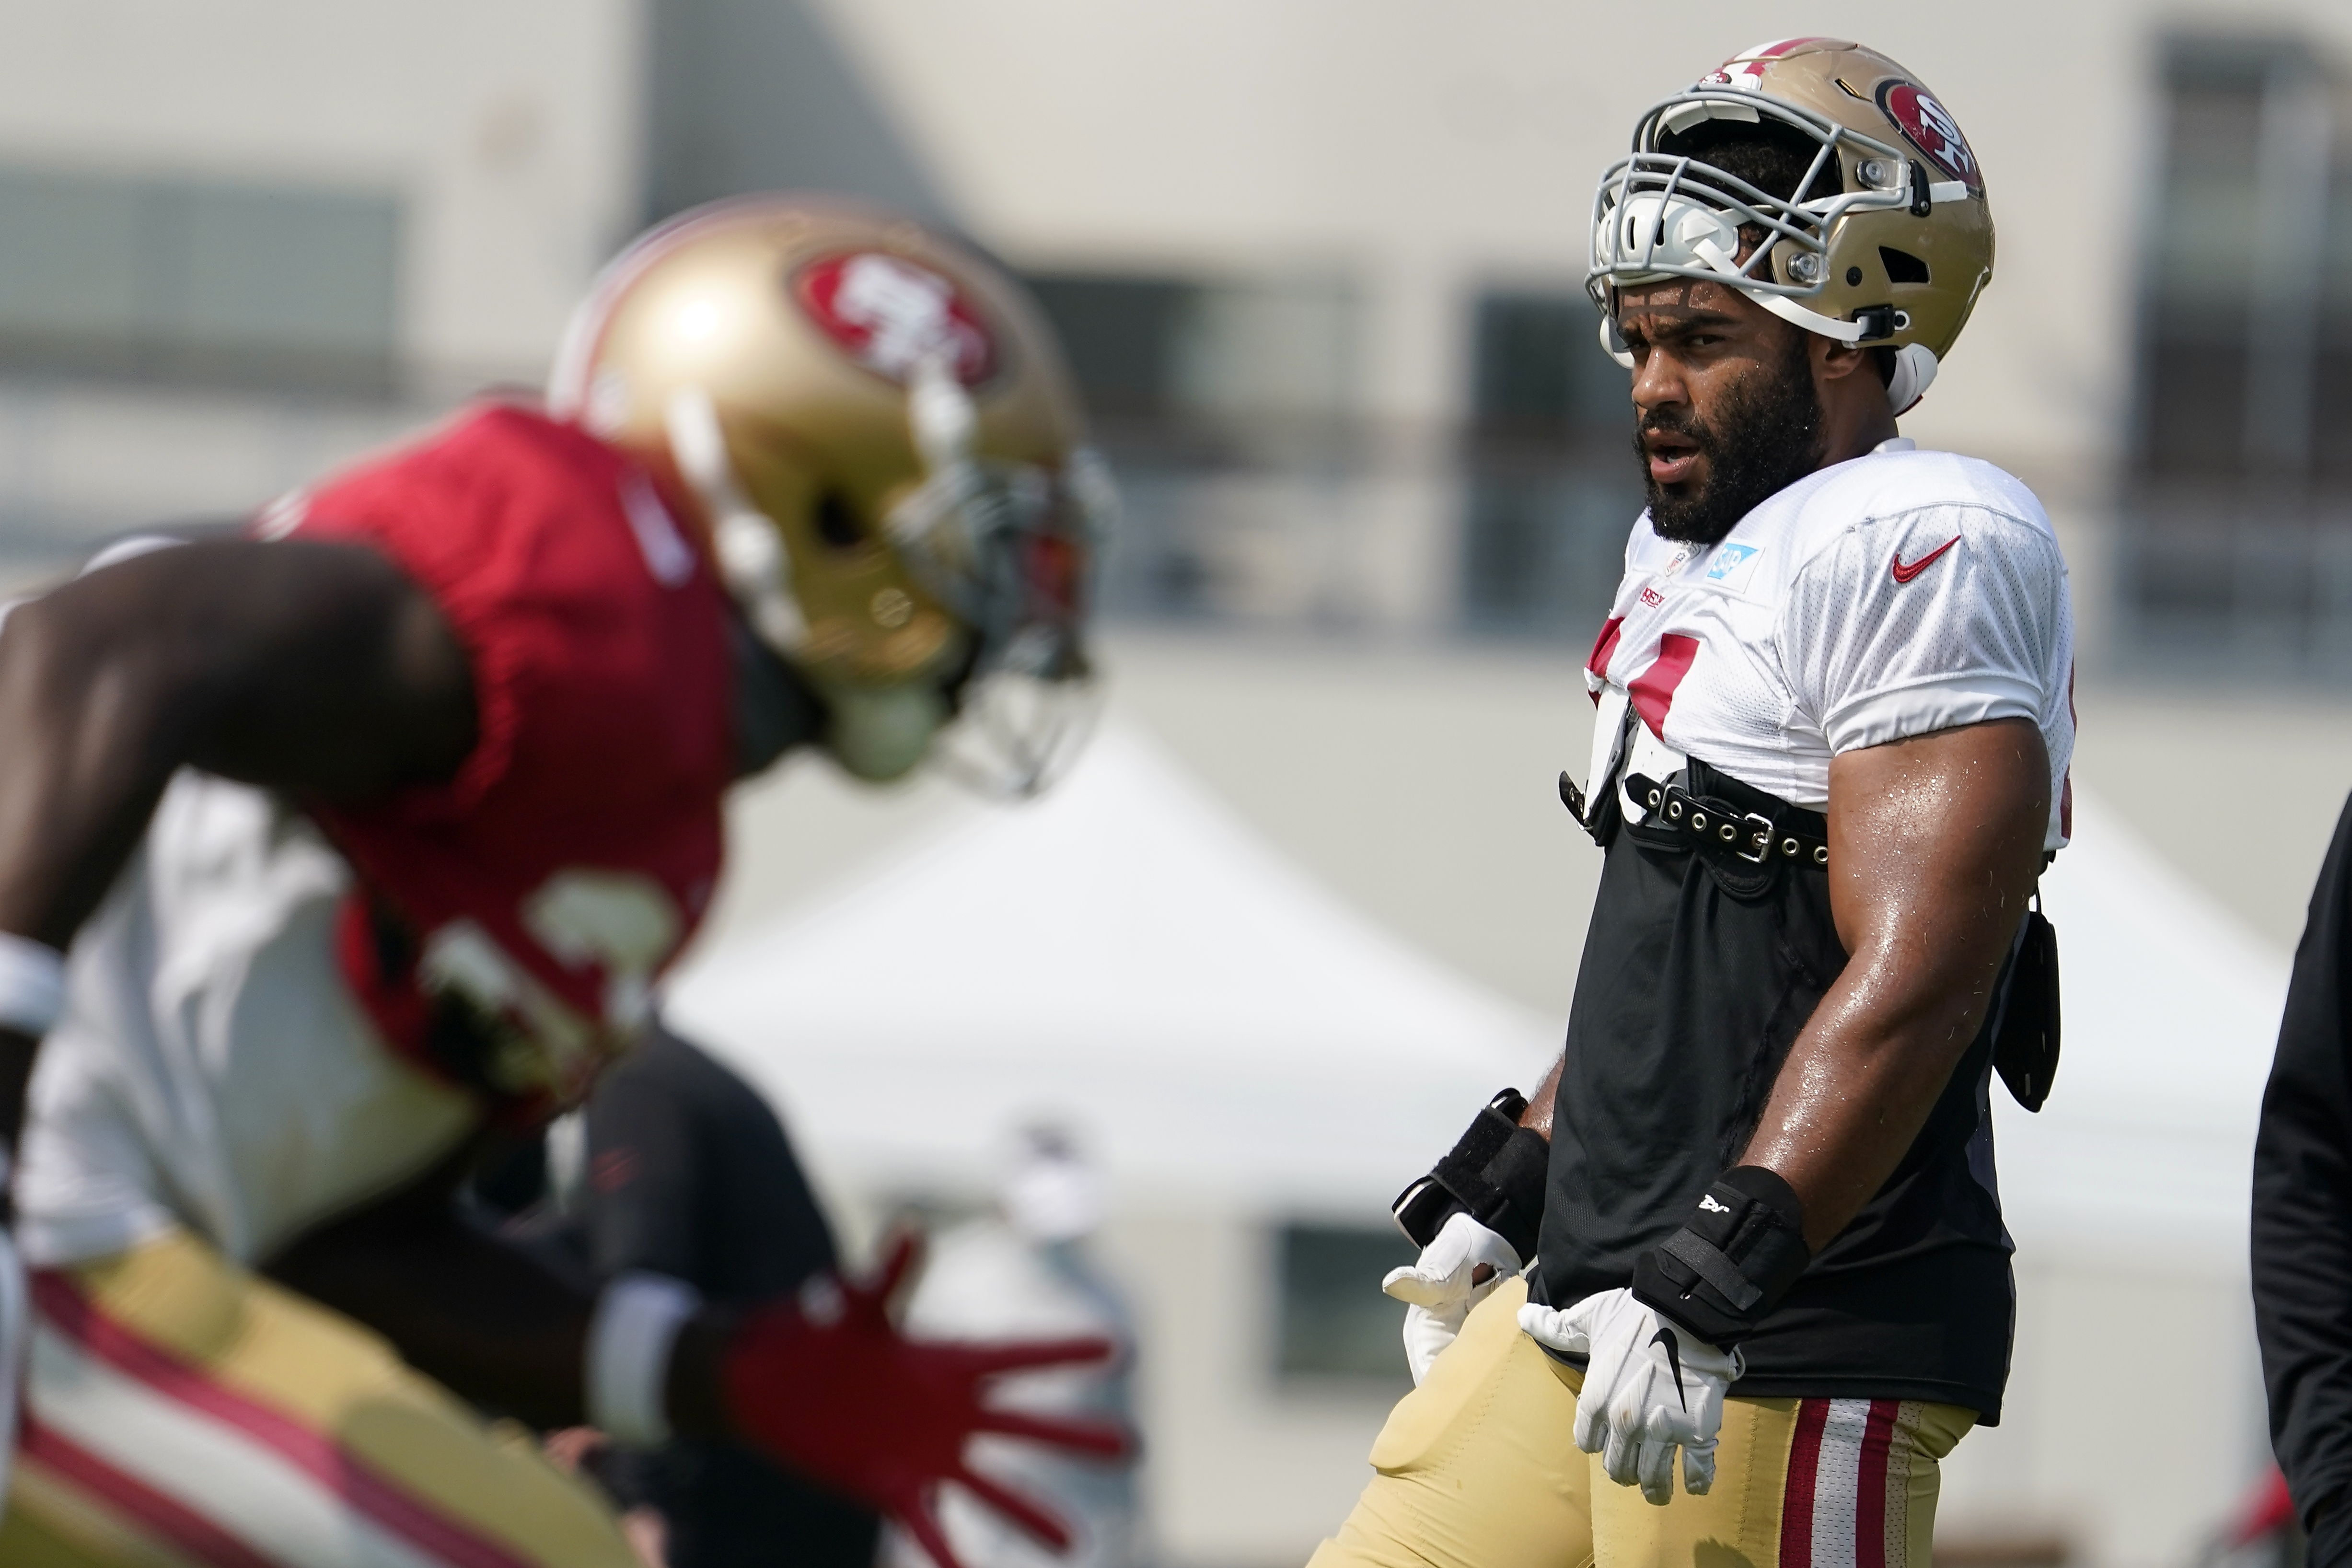 Nfl Reminded Of Covid 19 Pitfalls With 49ers Fred Warner